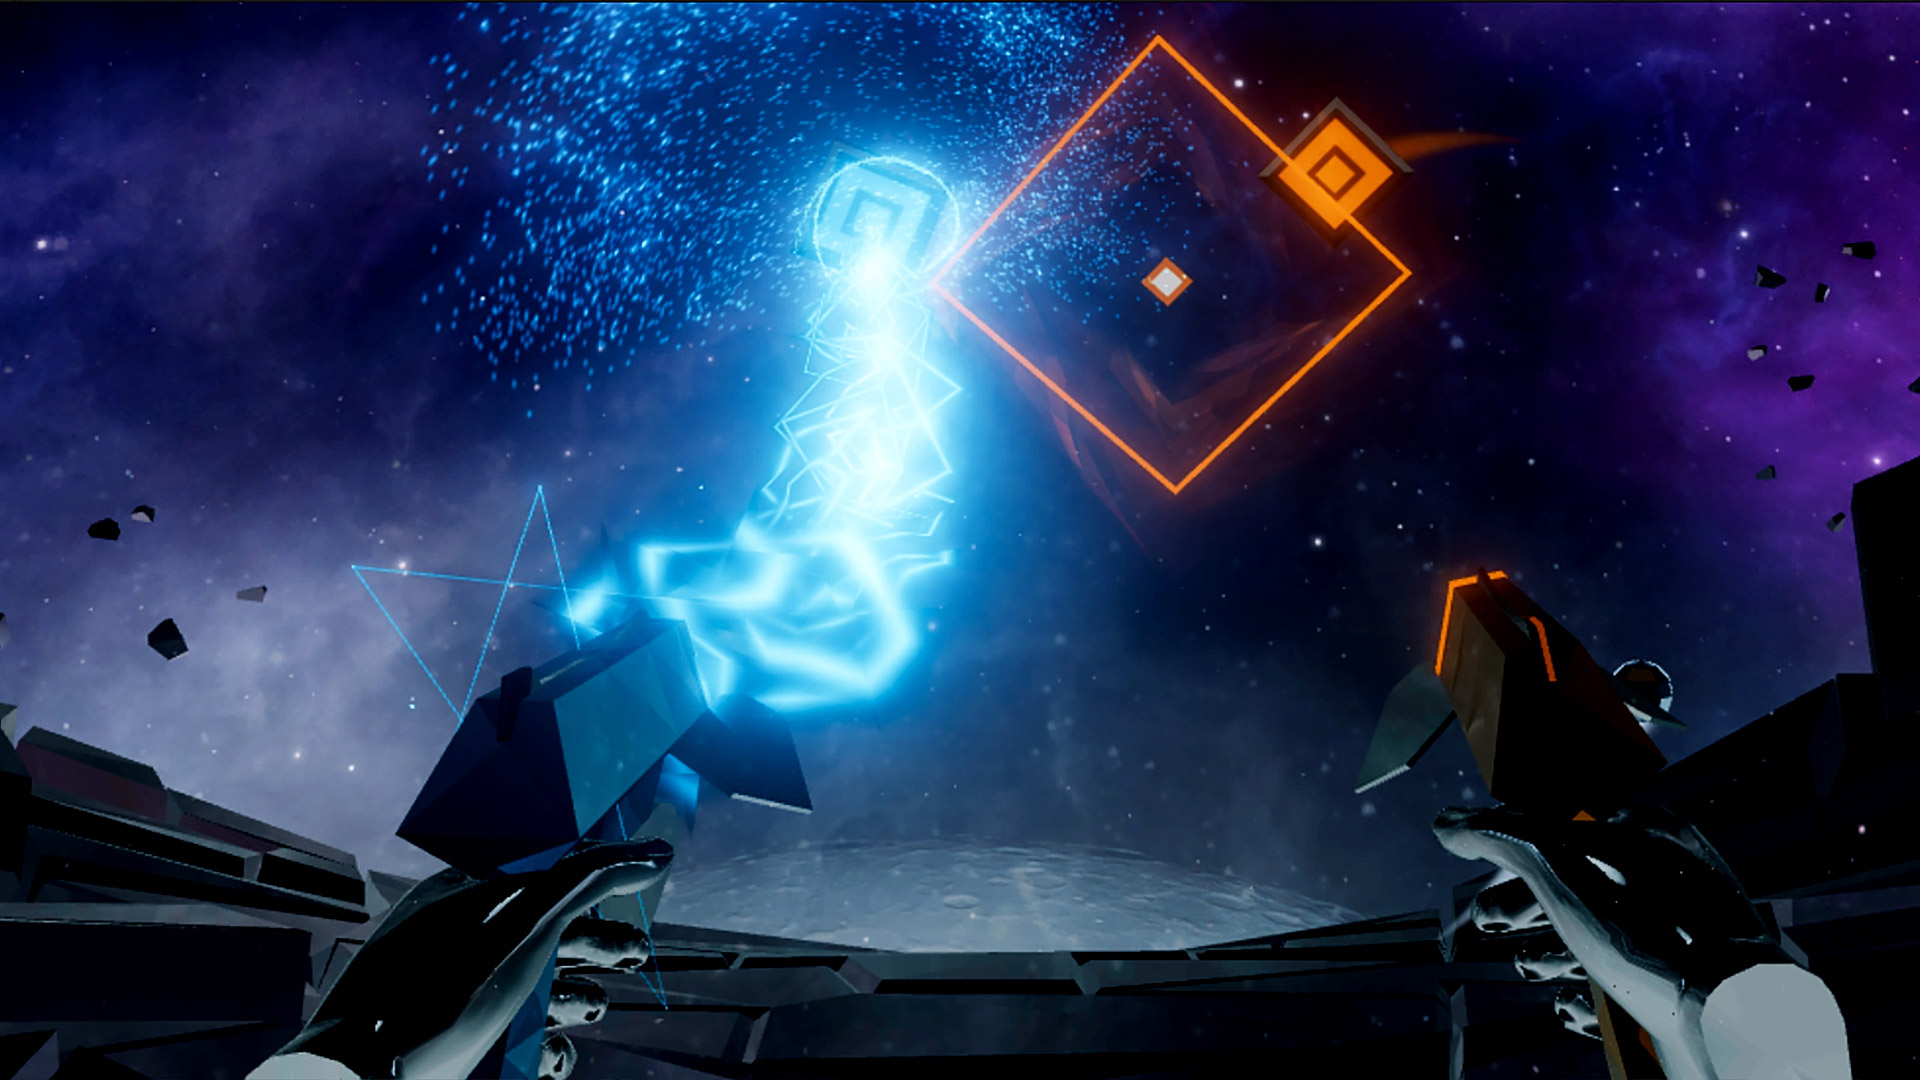 Grab Your Headsets! Harmonix's Rhythm Shooter Audica Is Coming to PSVR This Fall